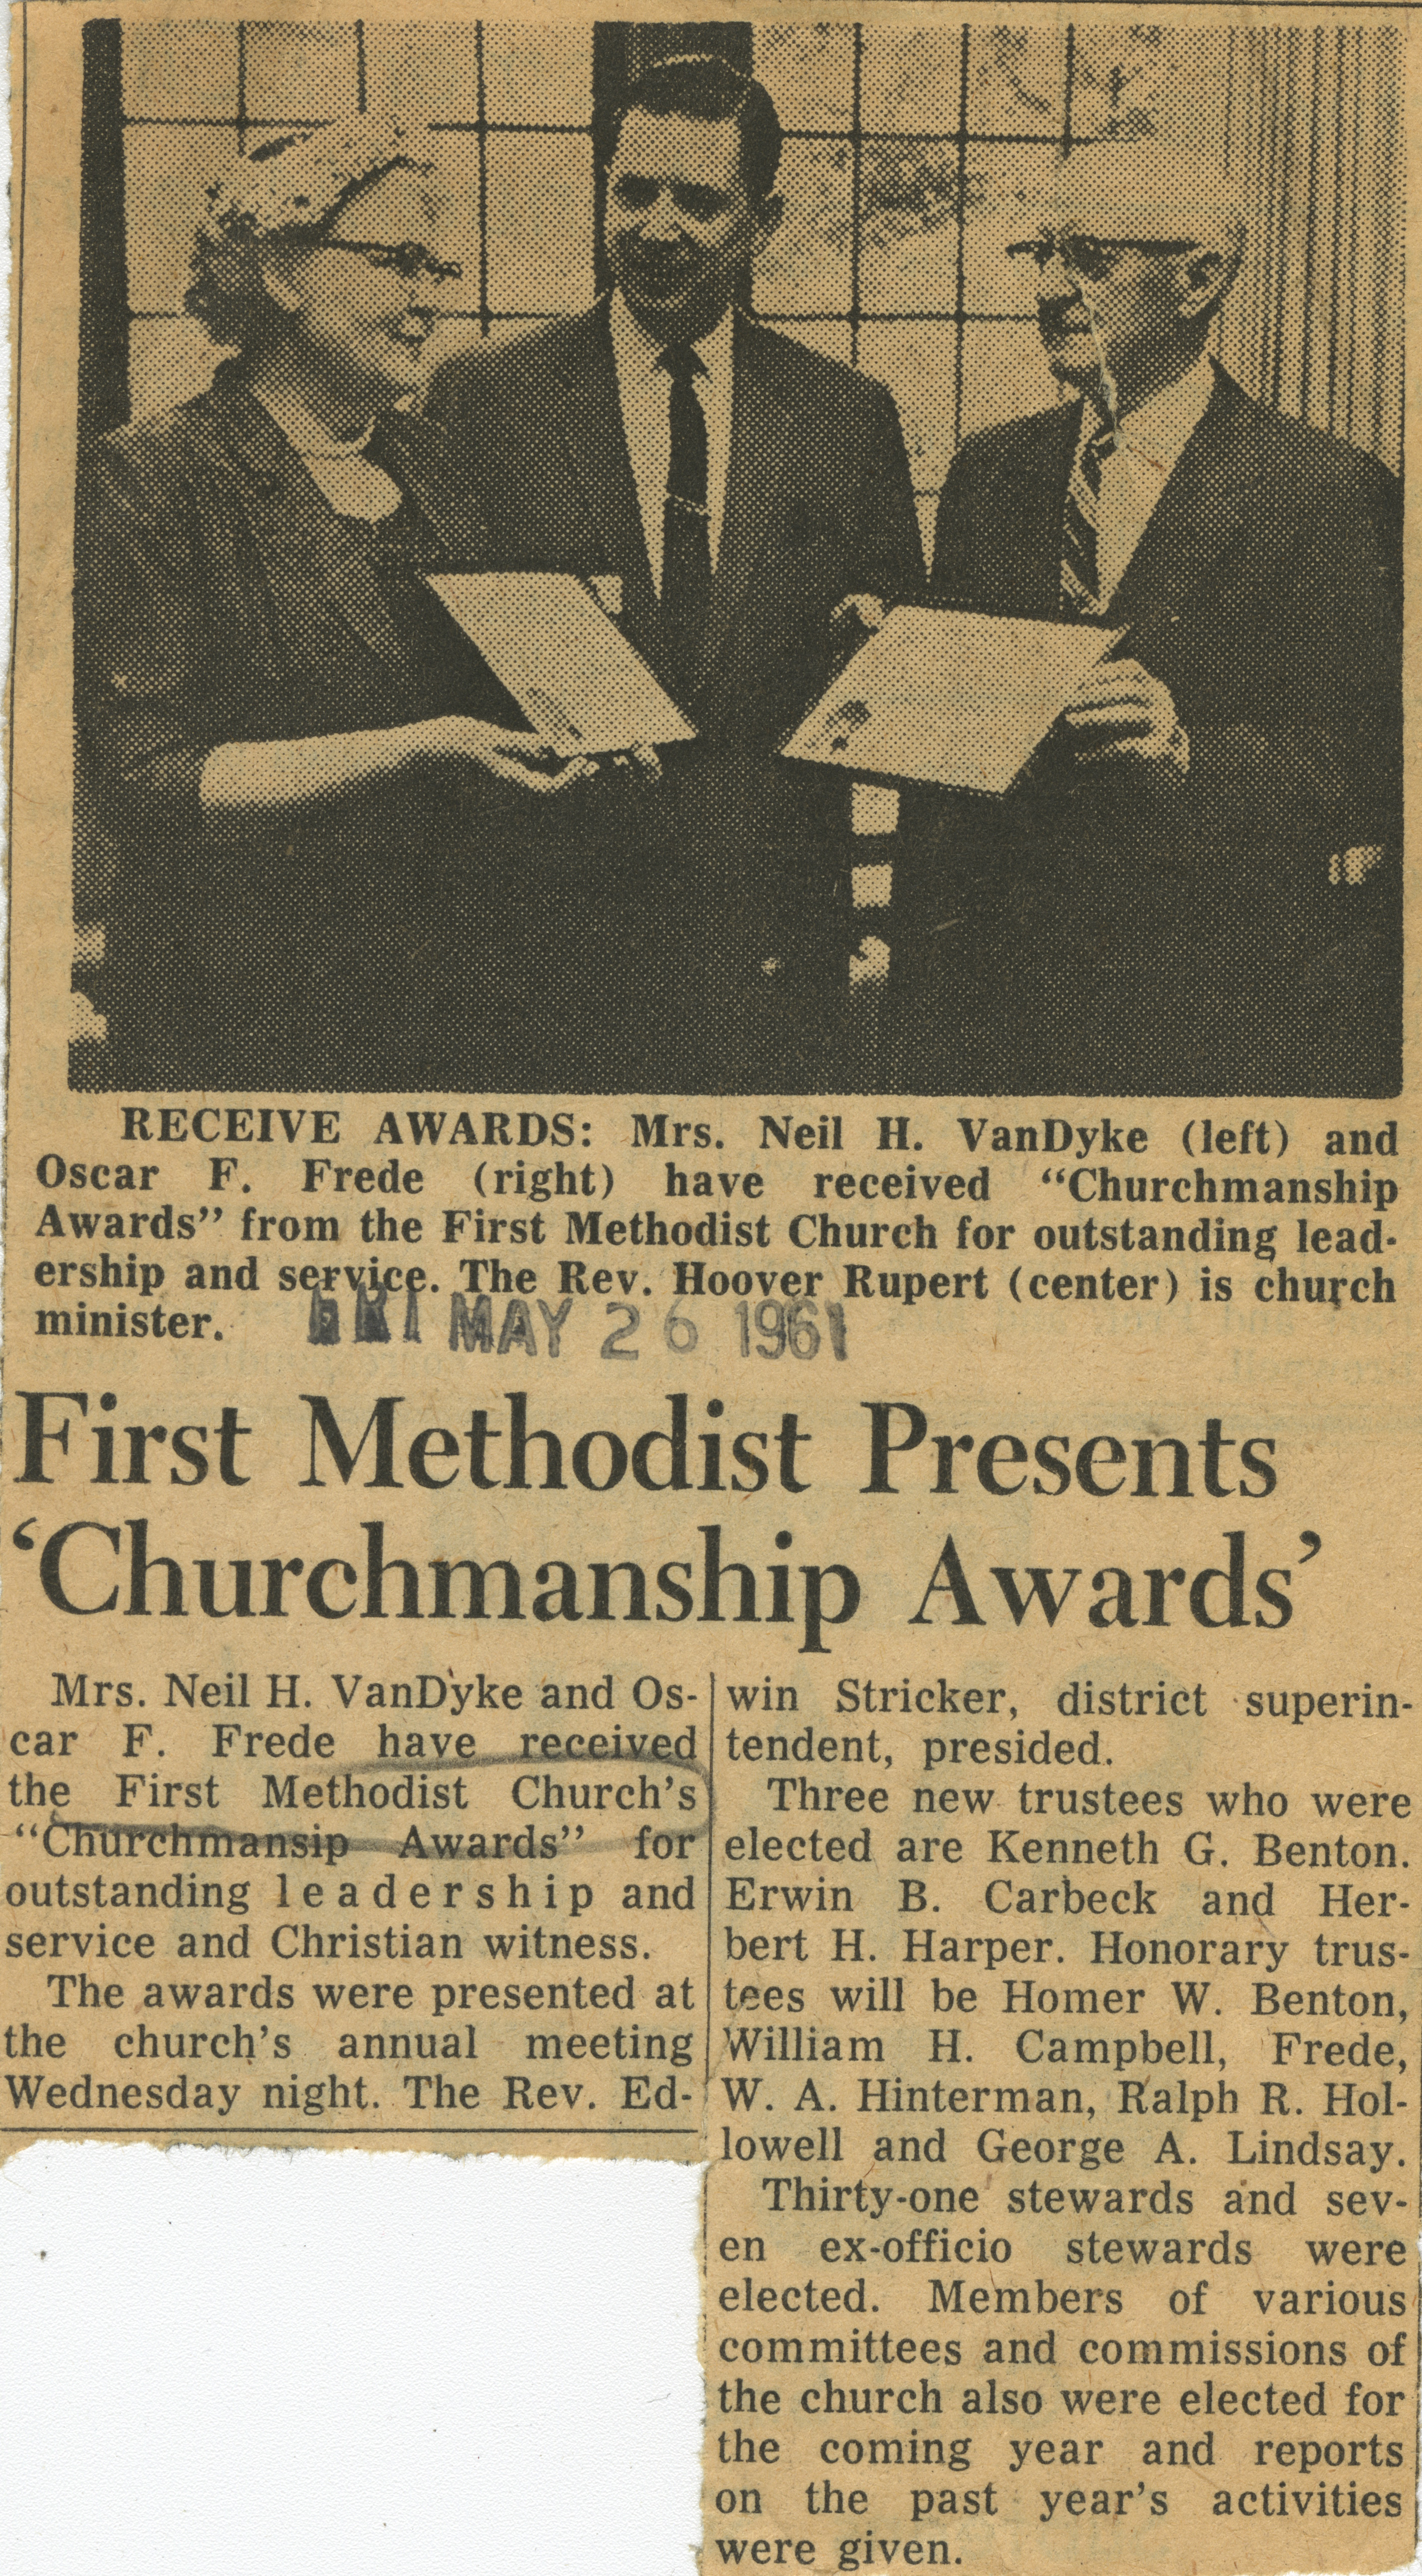 First Methodist Presents 'Churchmanship Awards' image